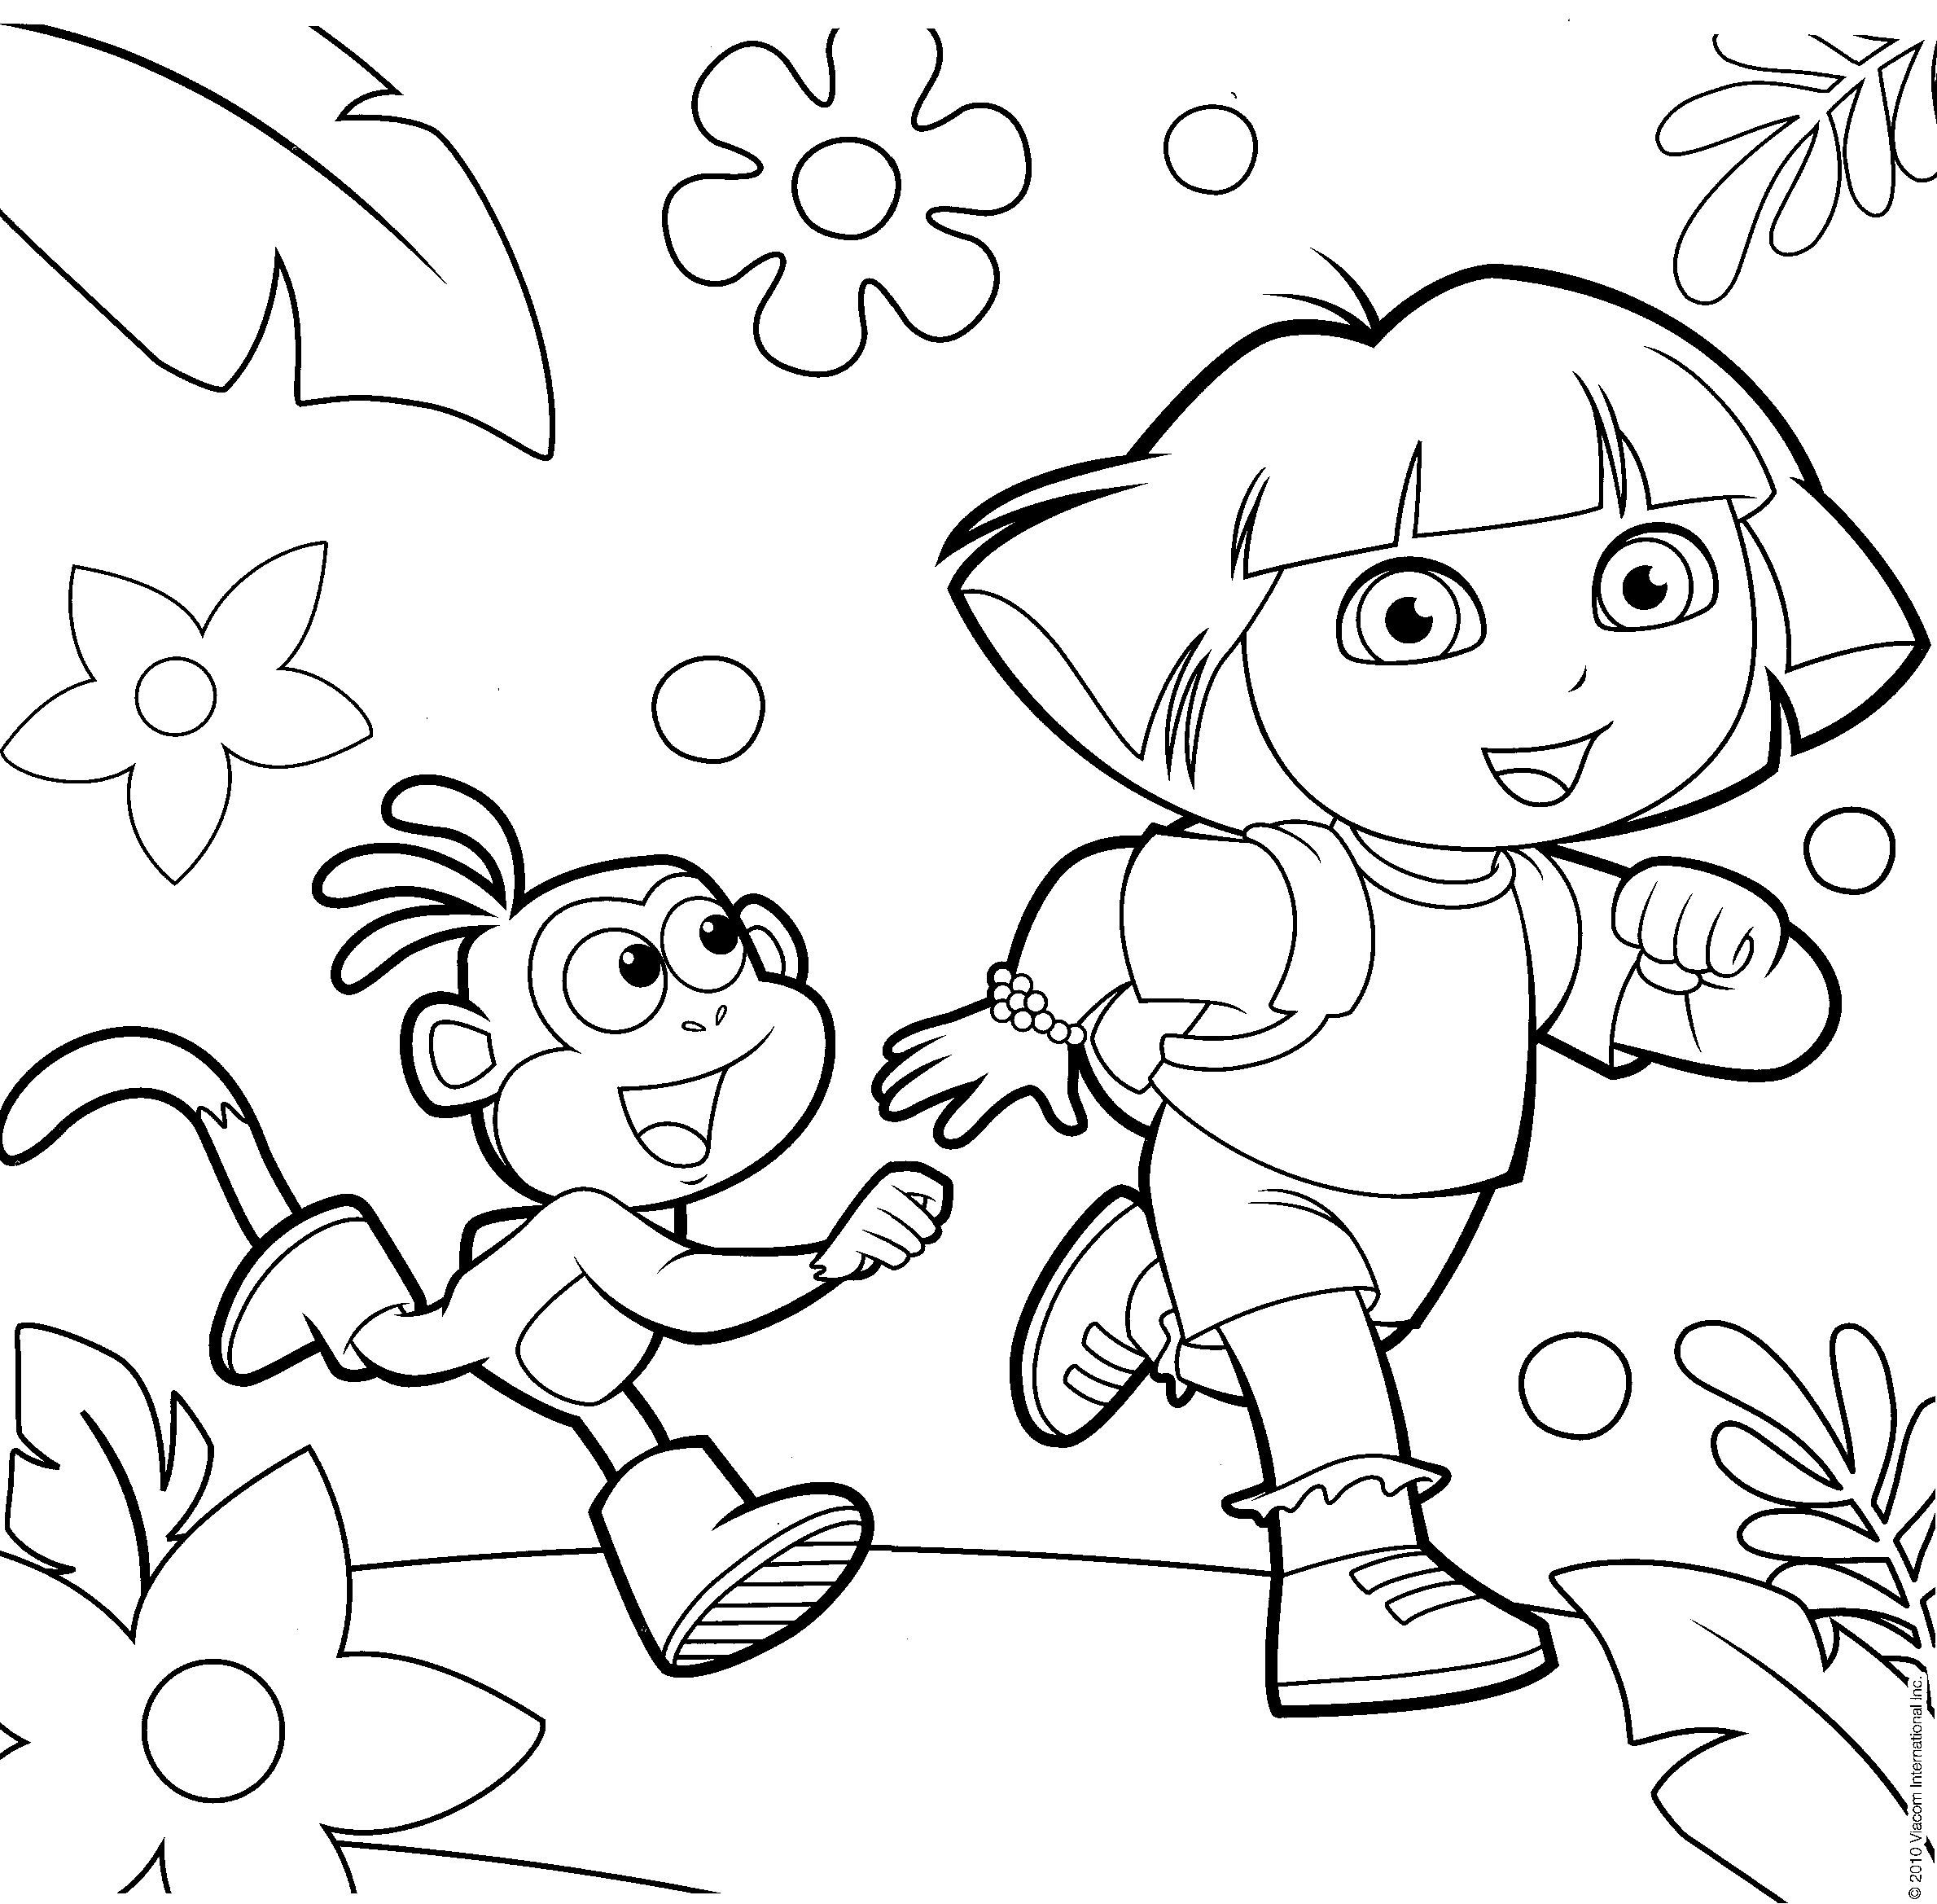 dora the explorer colouring pictures dora the explorer printable coloring pages for free dora the colouring explorer pictures